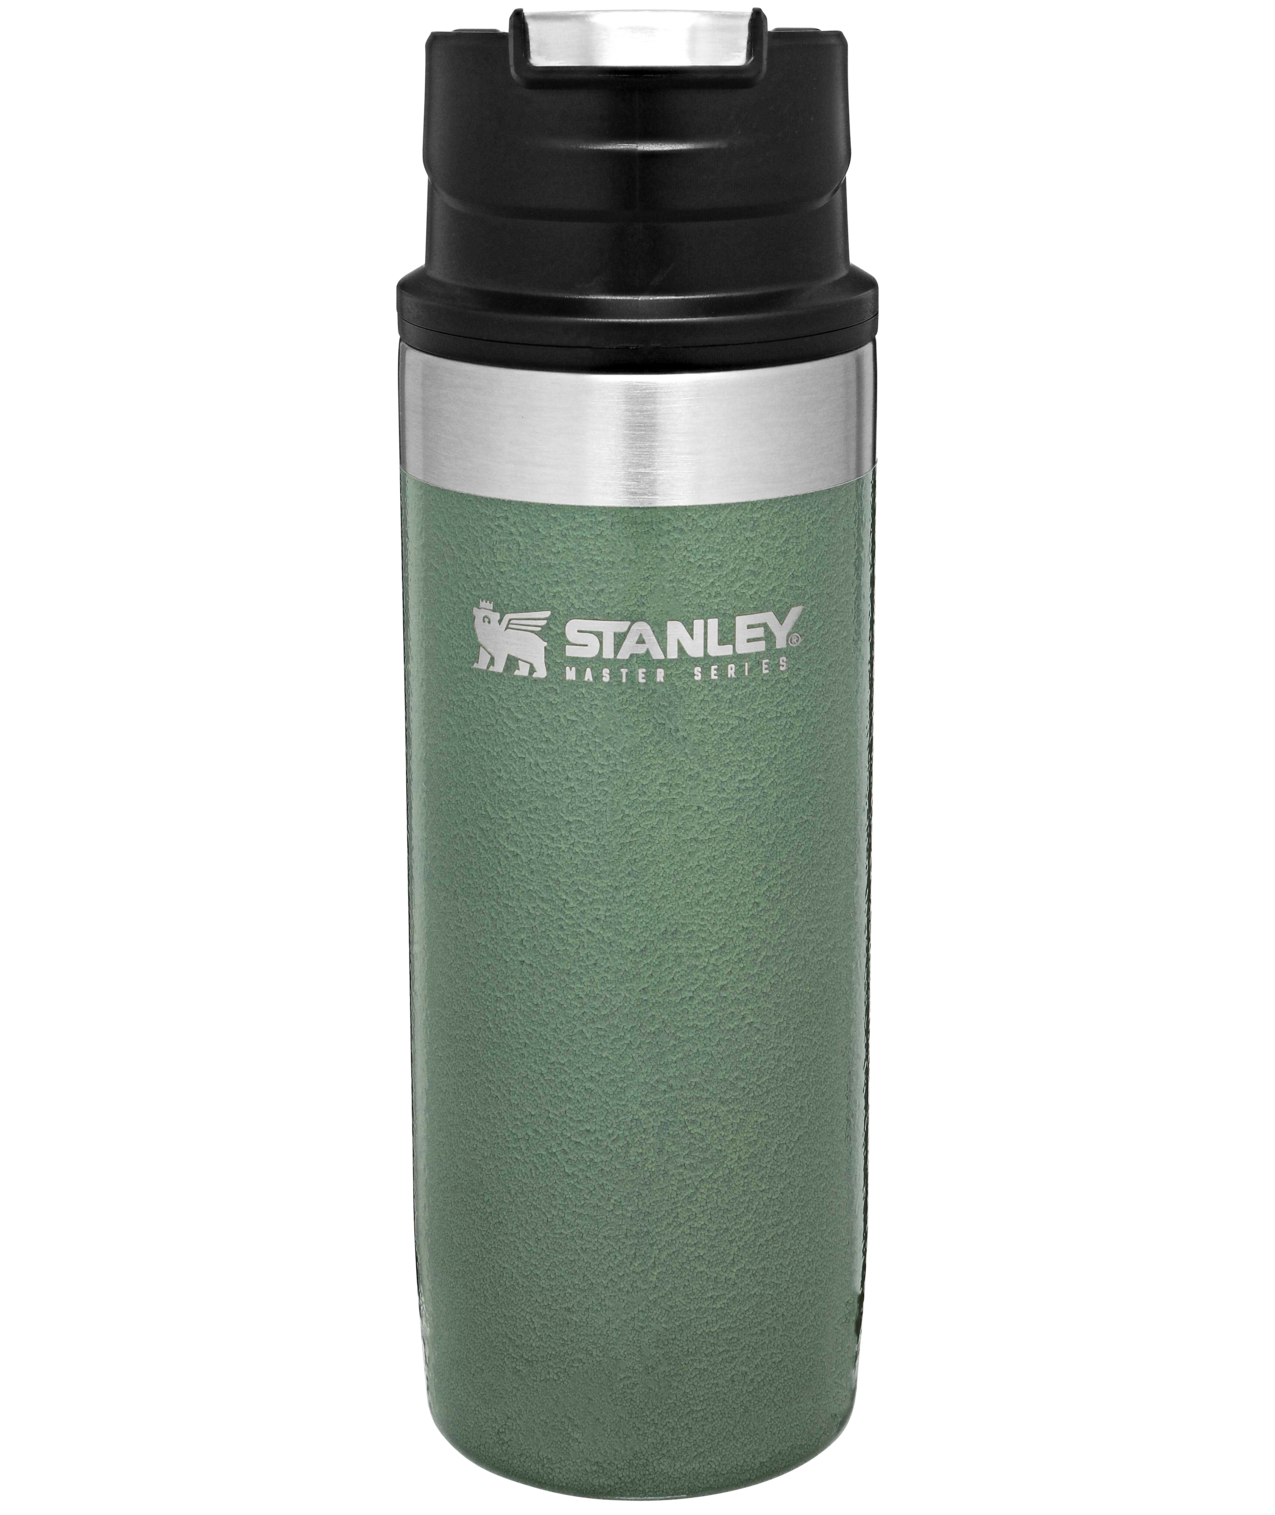 UNBREAKABLE WATER BOTTLE Foundry Black *NEW* STANLEY Master Vacuum 22 oz